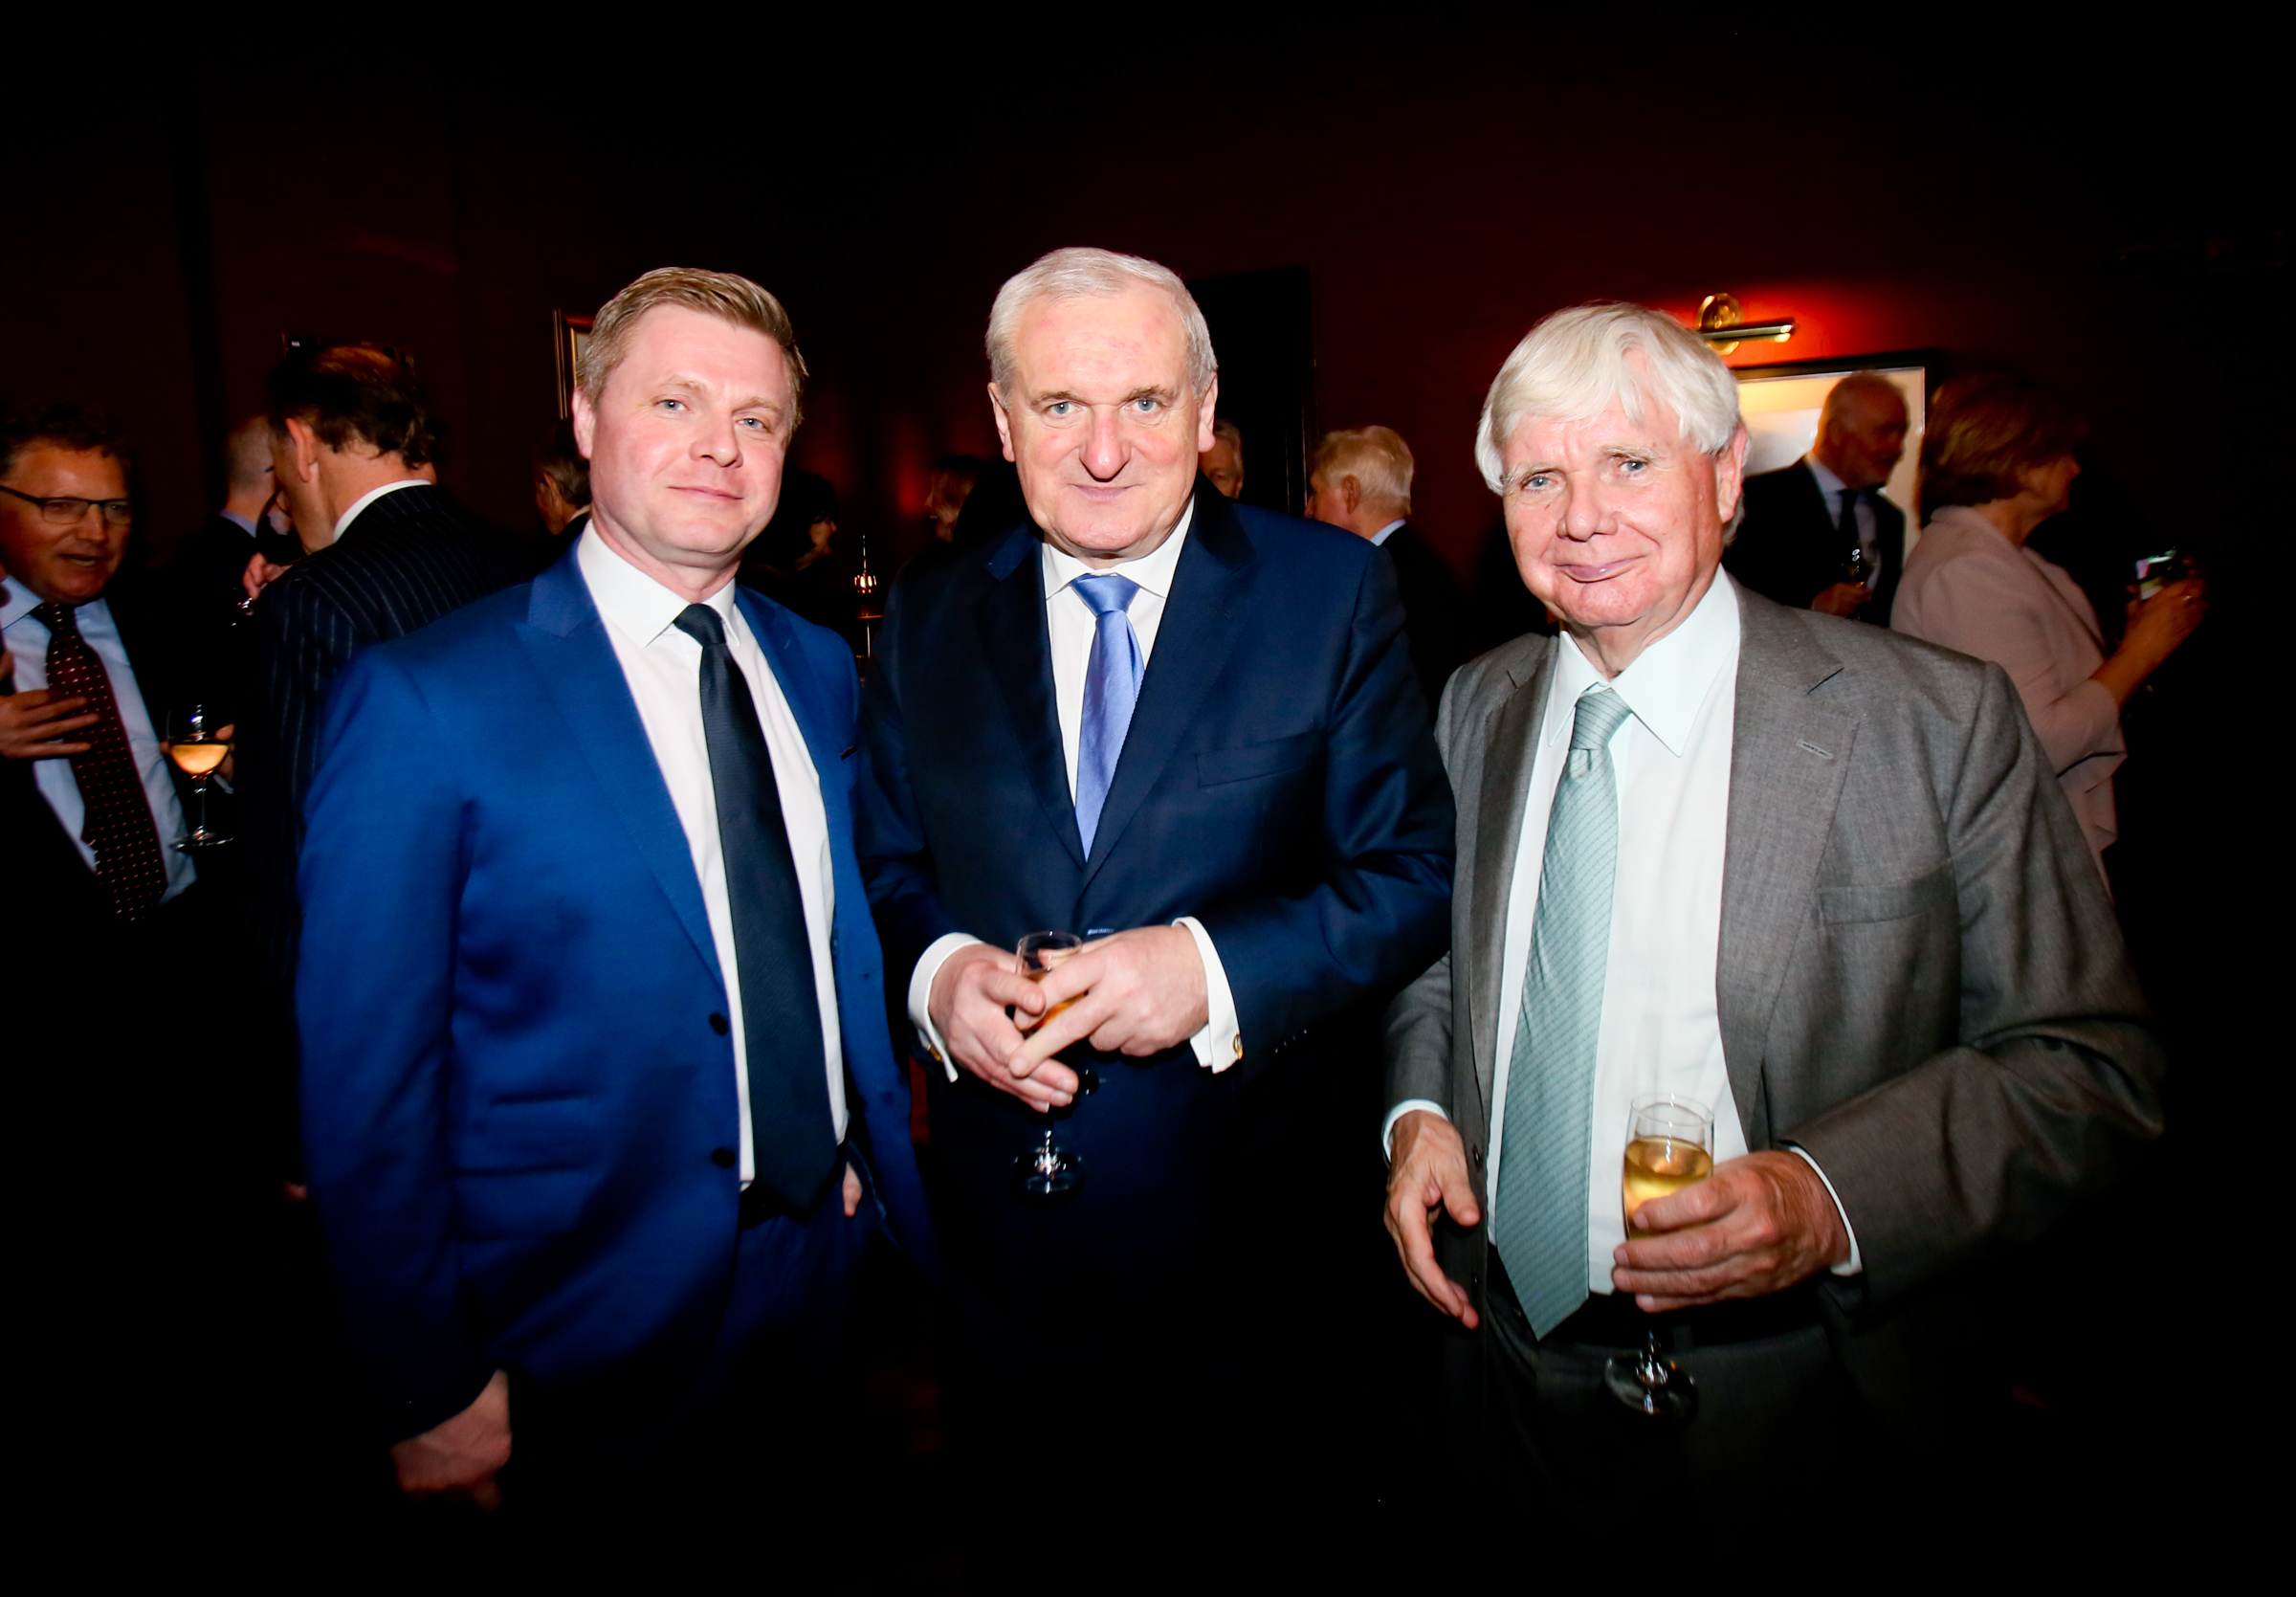 Former Taoiseach Bertie Ahern with Harcourt chairman Pat Doherty and son John Paul Doherty